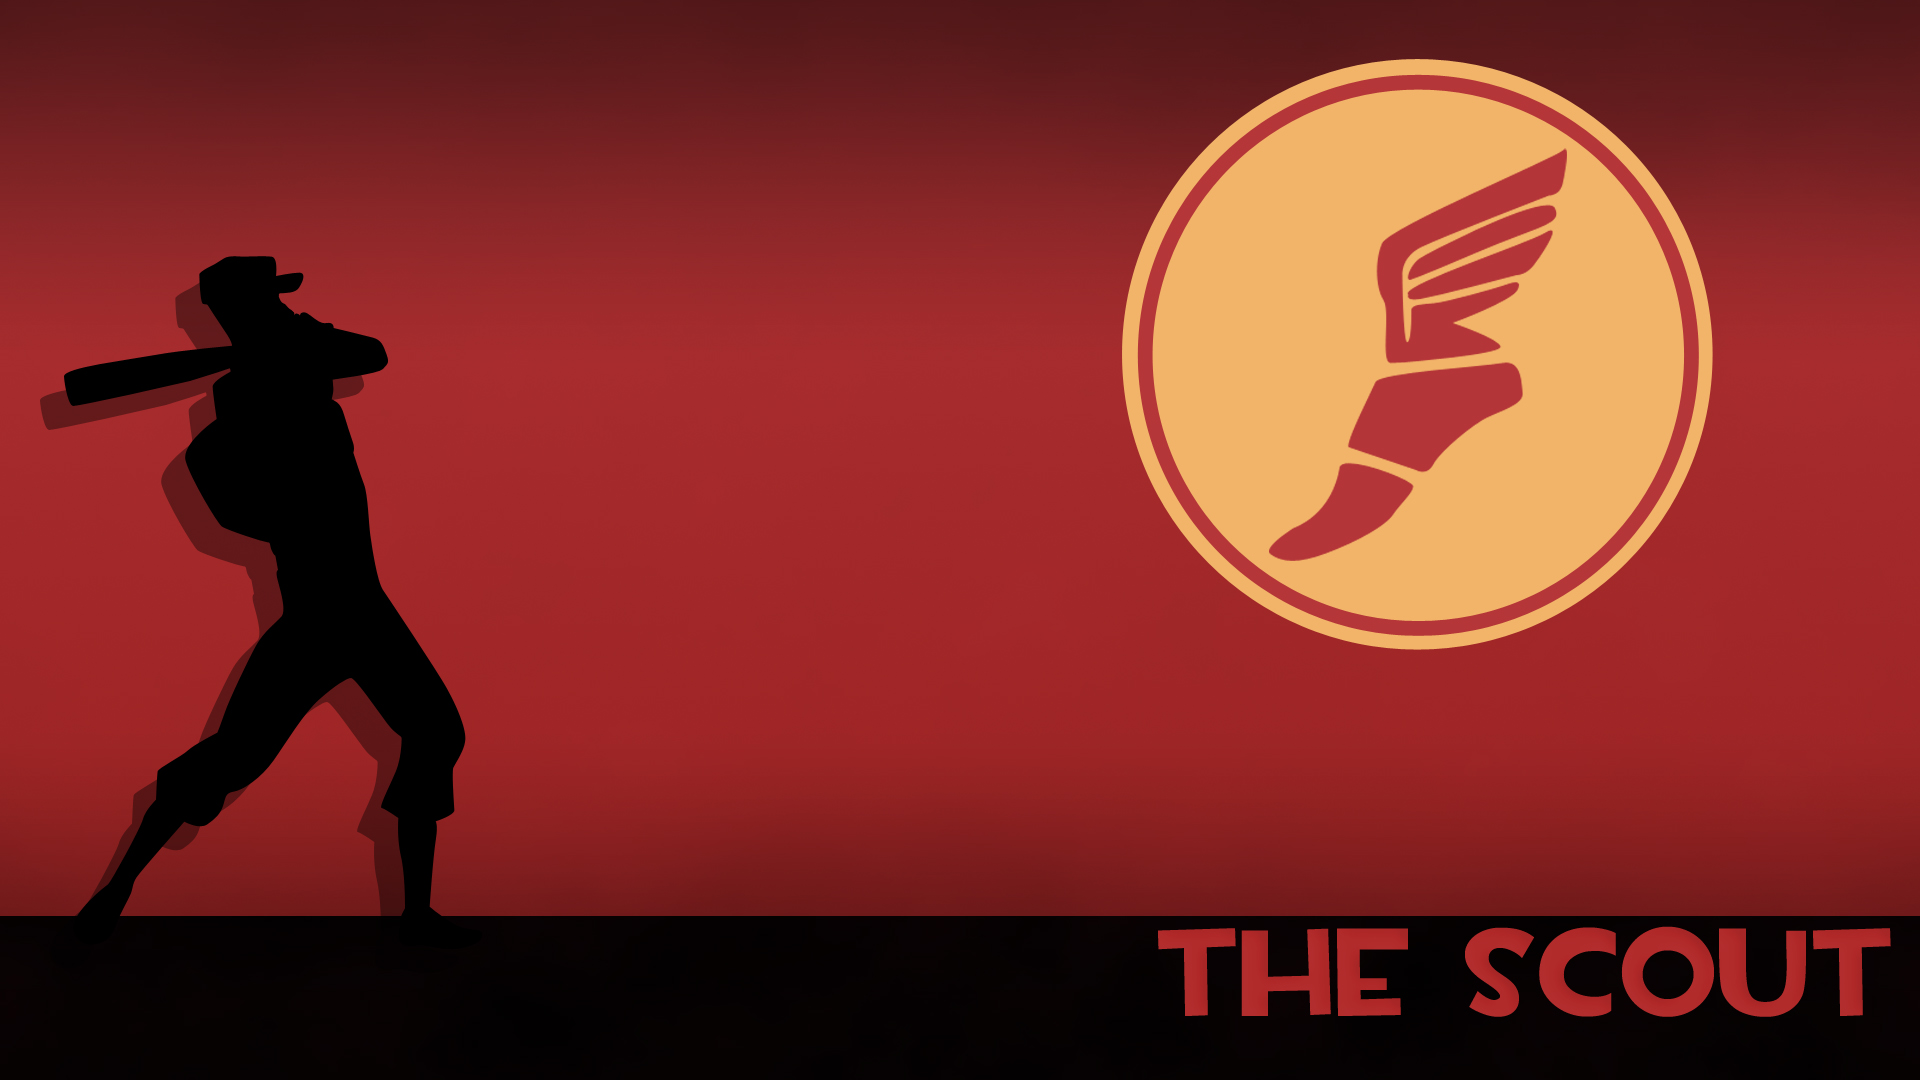 Team Fortress 2 Scout Wallpaper - WallpaperSafari